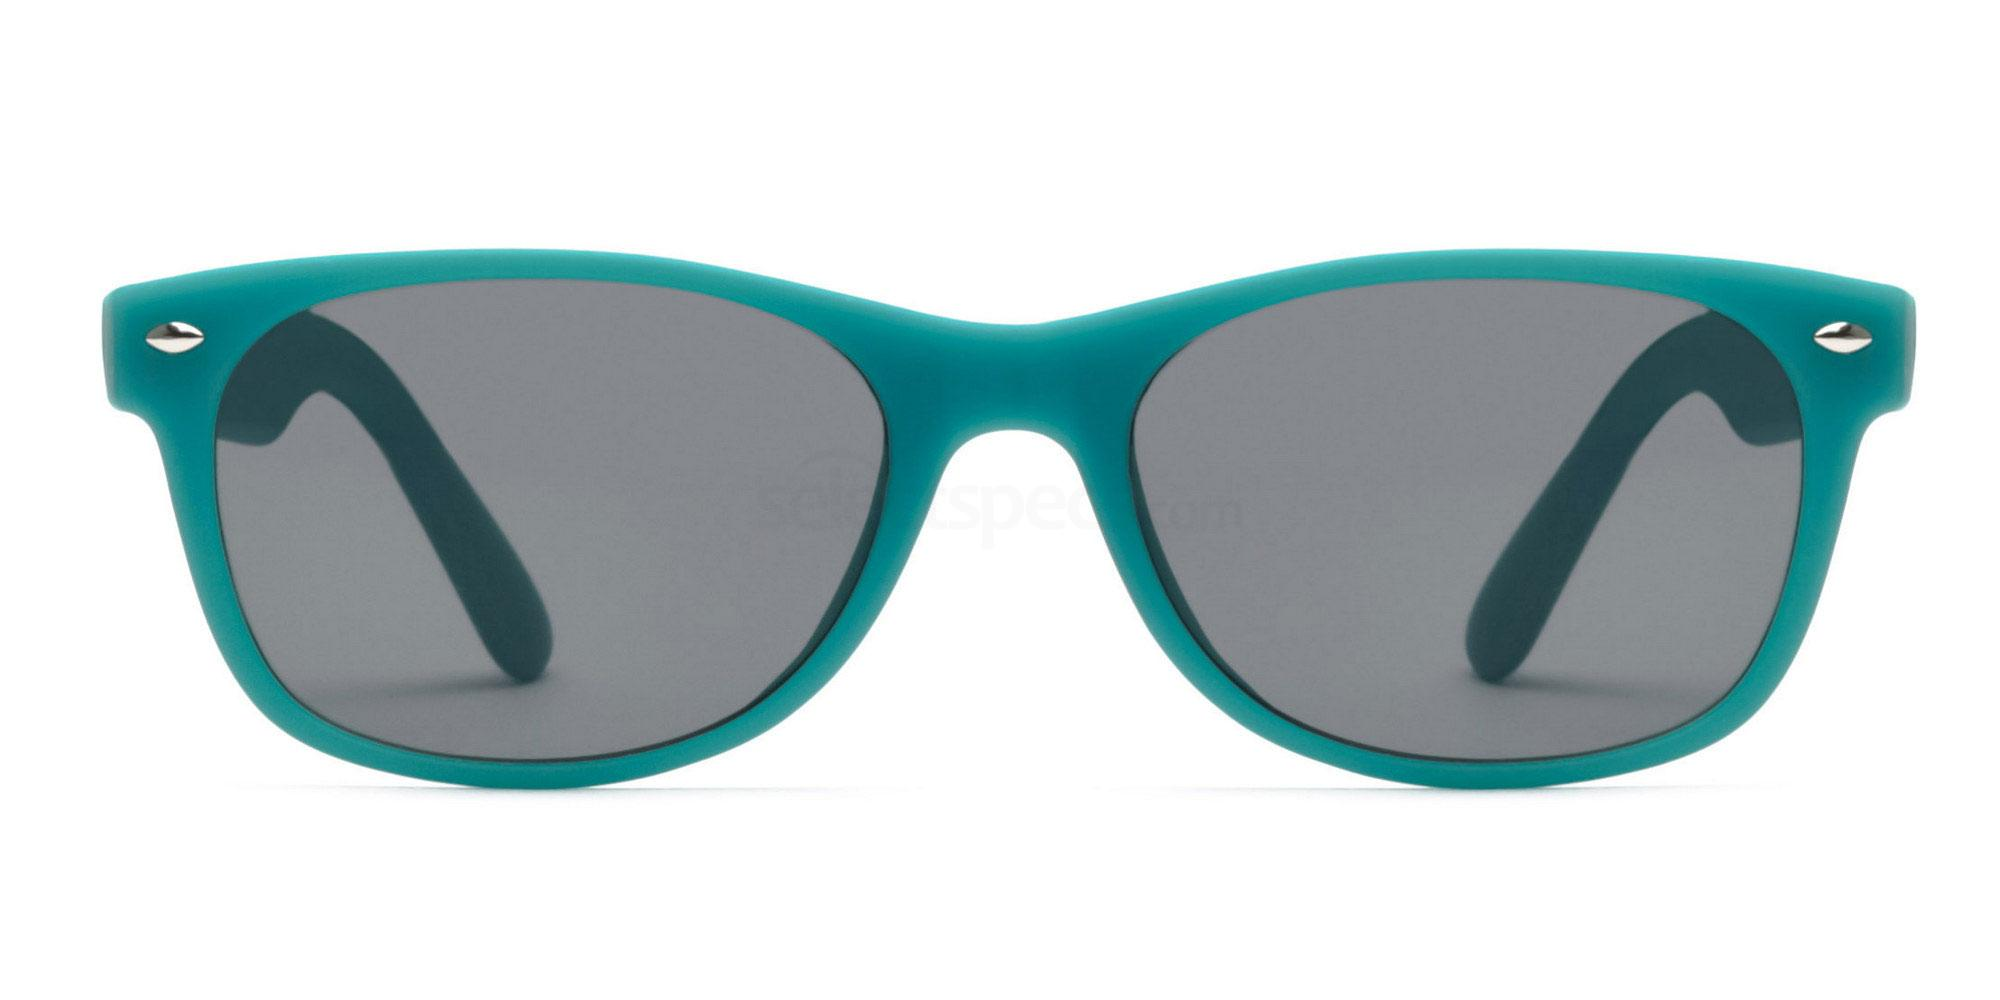 Green S8122 - Green (Sunglasses) , Savannah